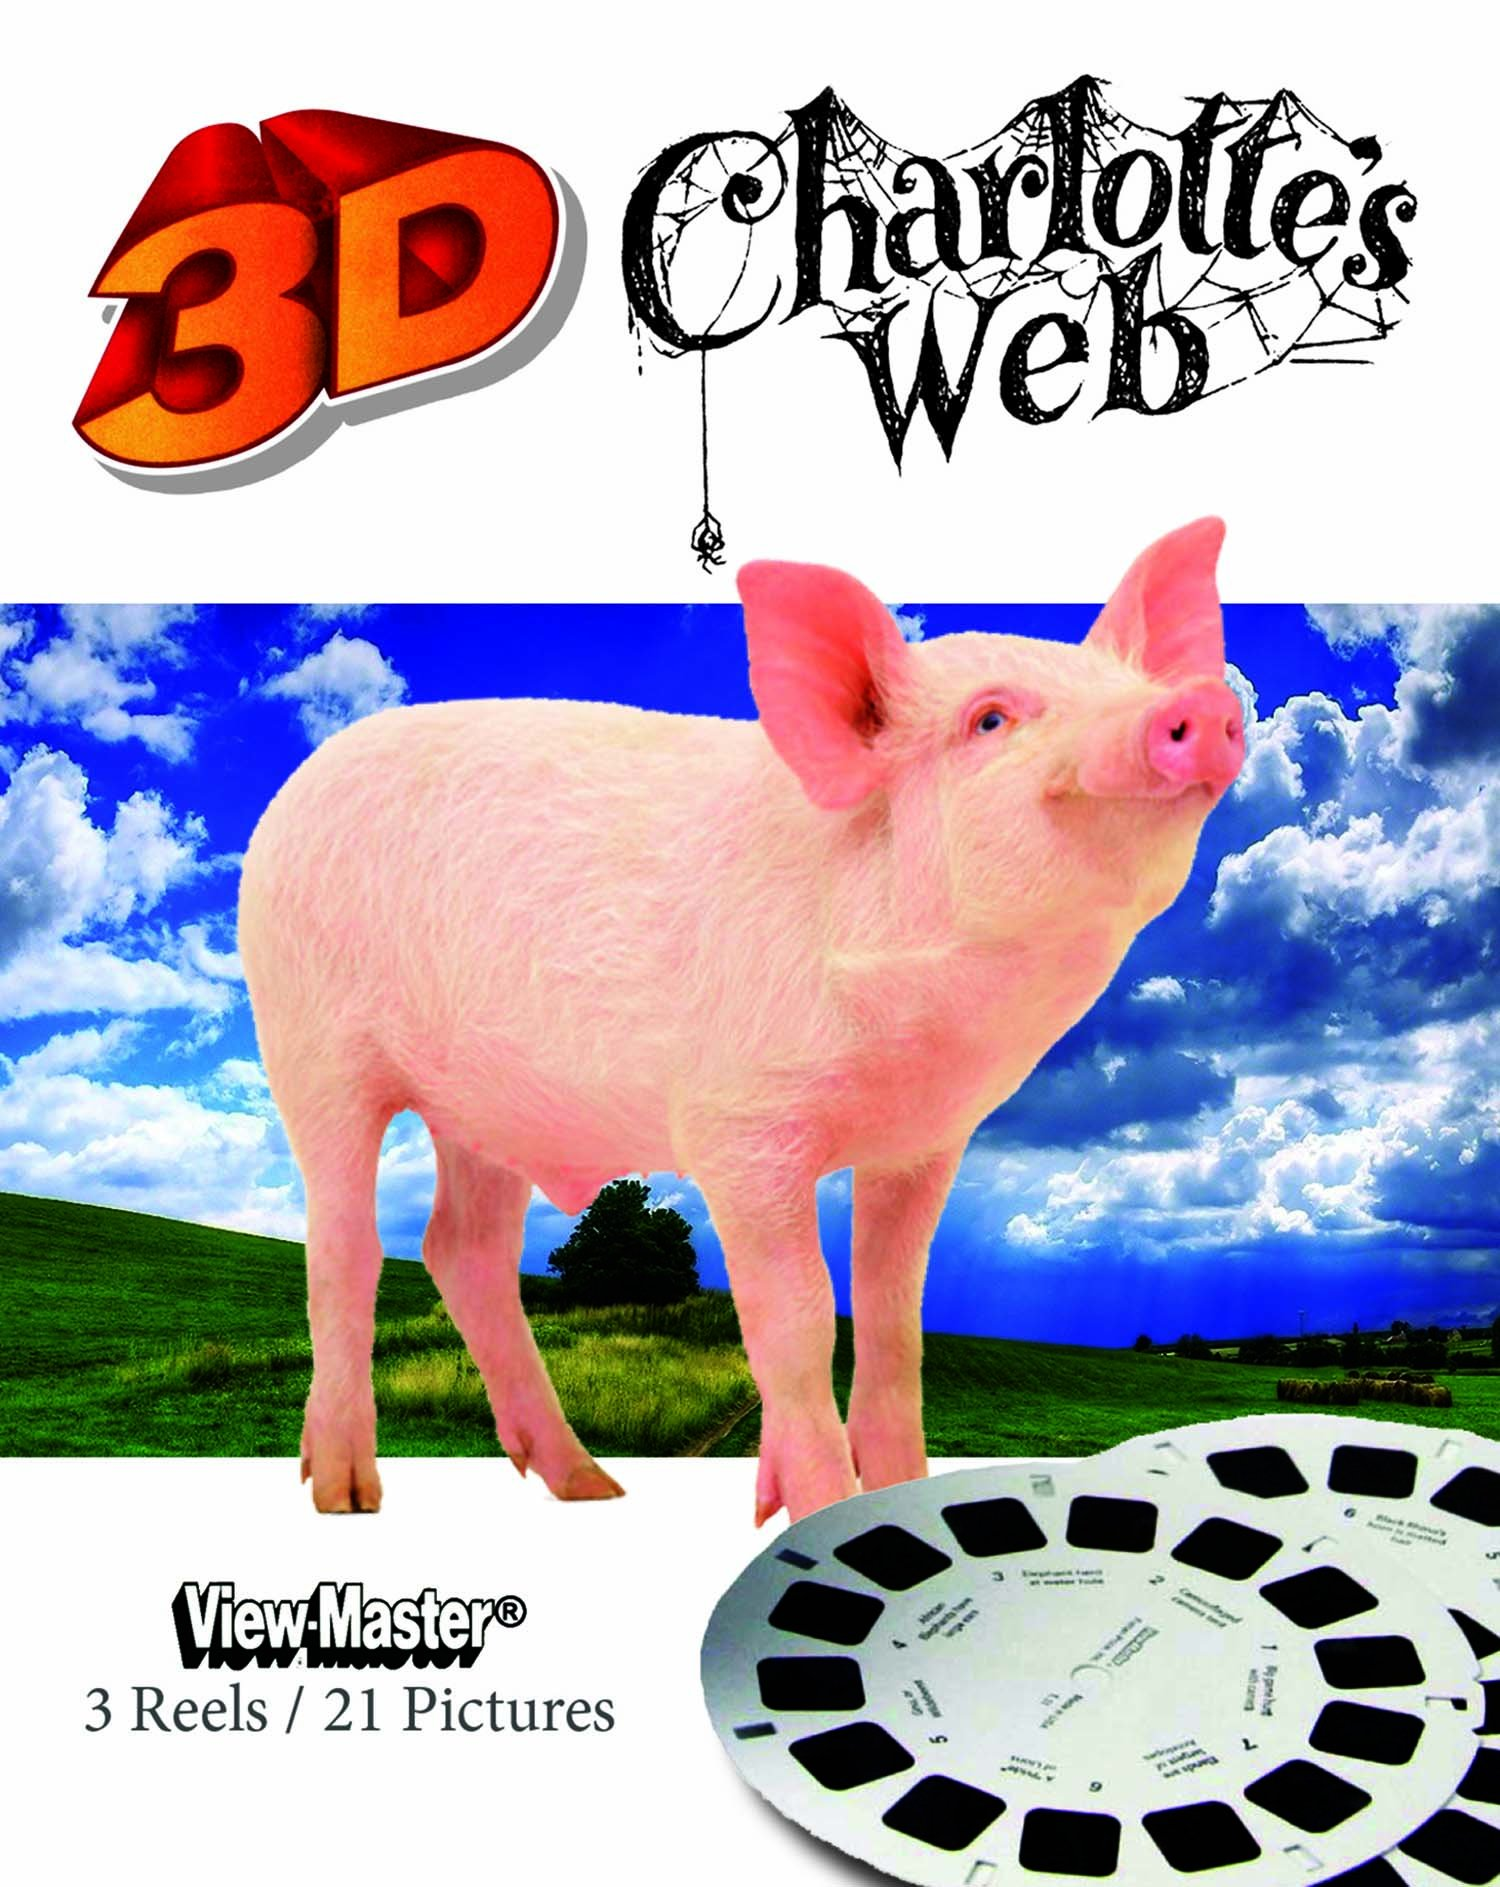 ViewMaster Charlotte's Web - 3 Reel Set by View Master